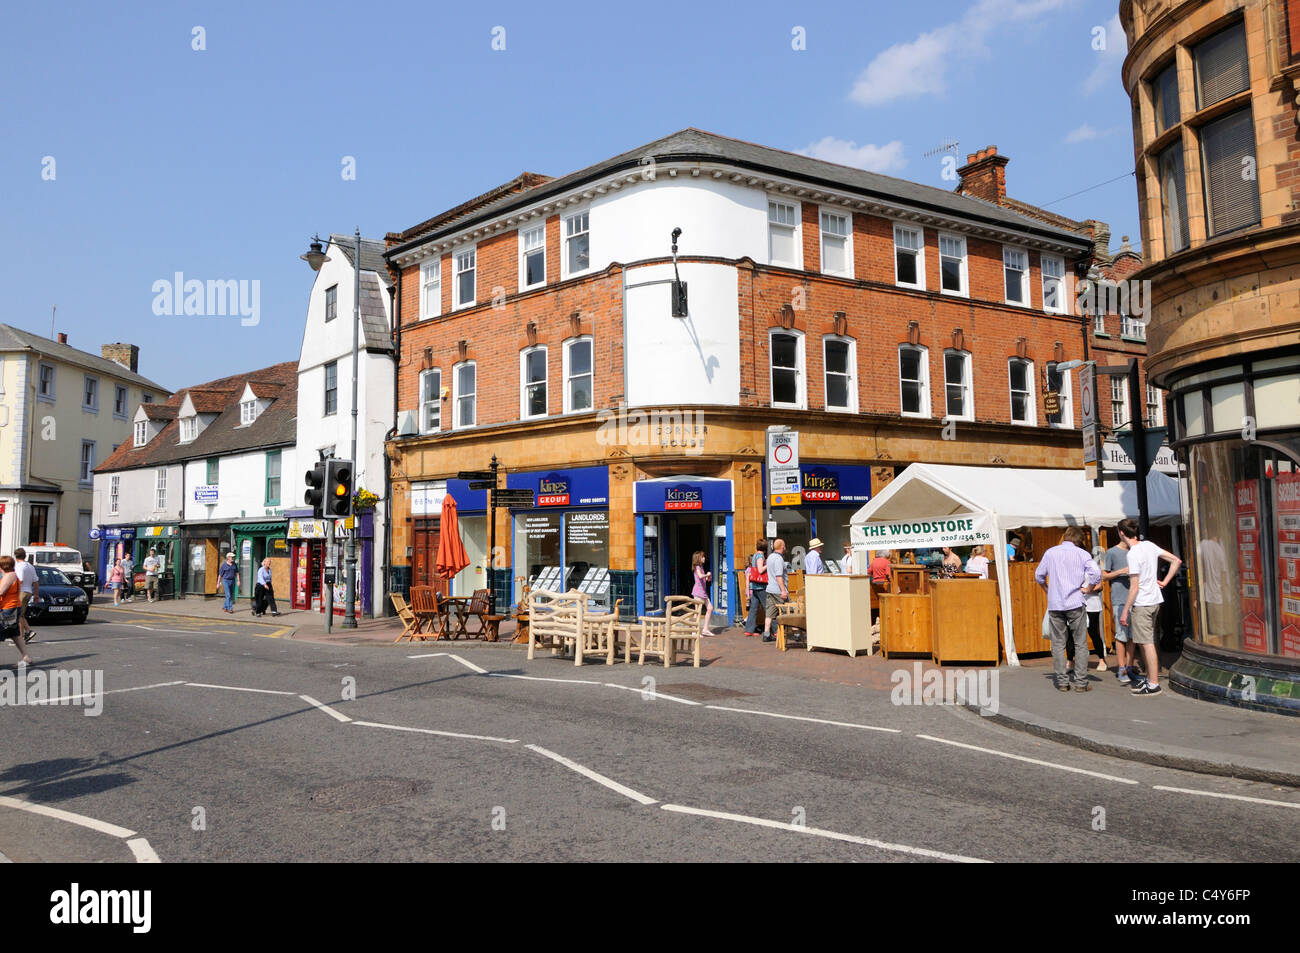 Market stalls at the junction of Maidenhead Street and the Wash, Hertford - Stock Image